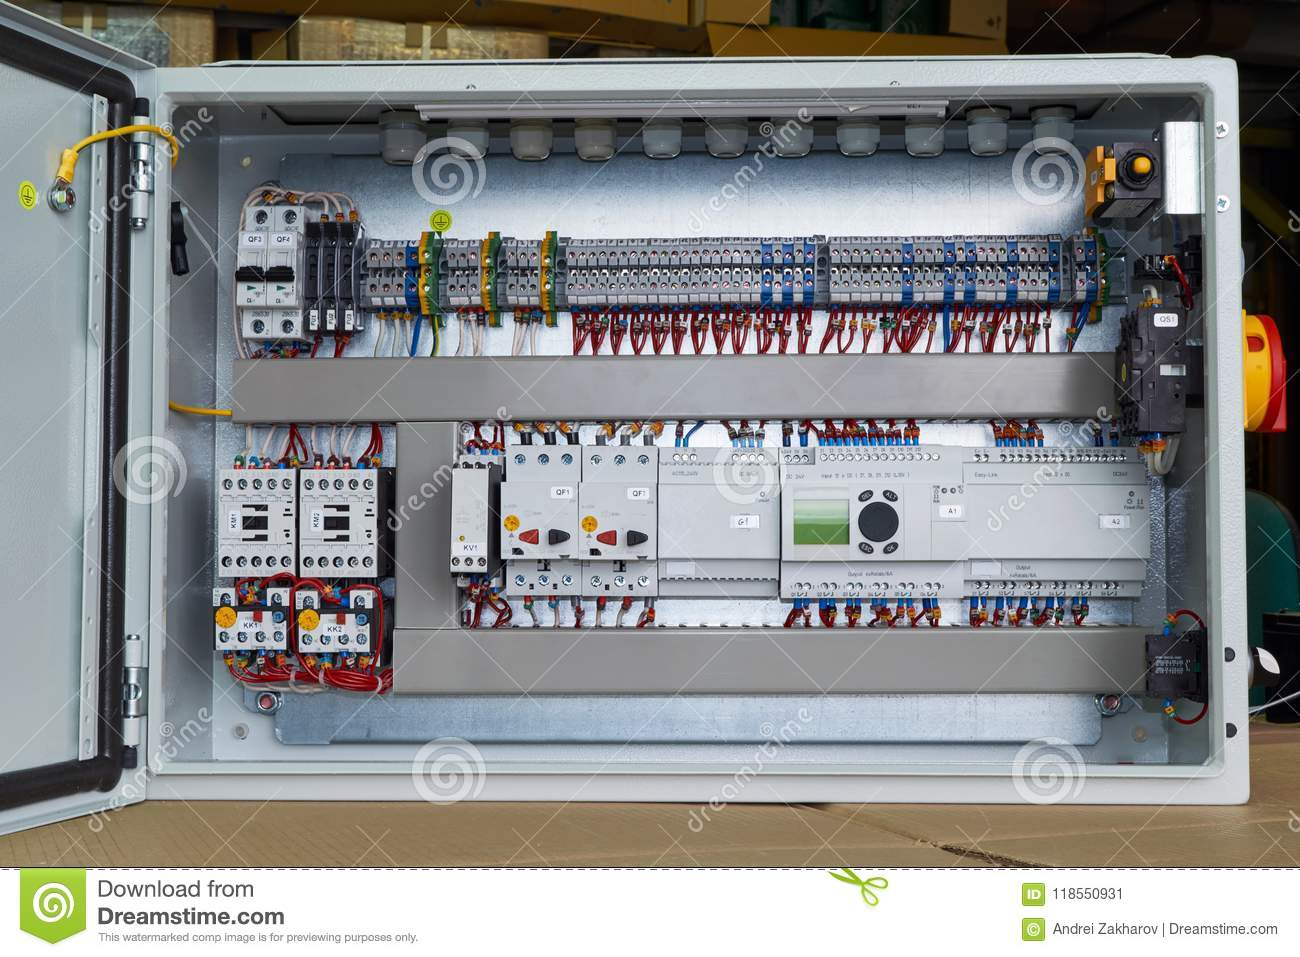 hight resolution of modern electrical control cabinet with controller and circuit breakers motor protection switches contactors with thermal relays fuse operated breakers